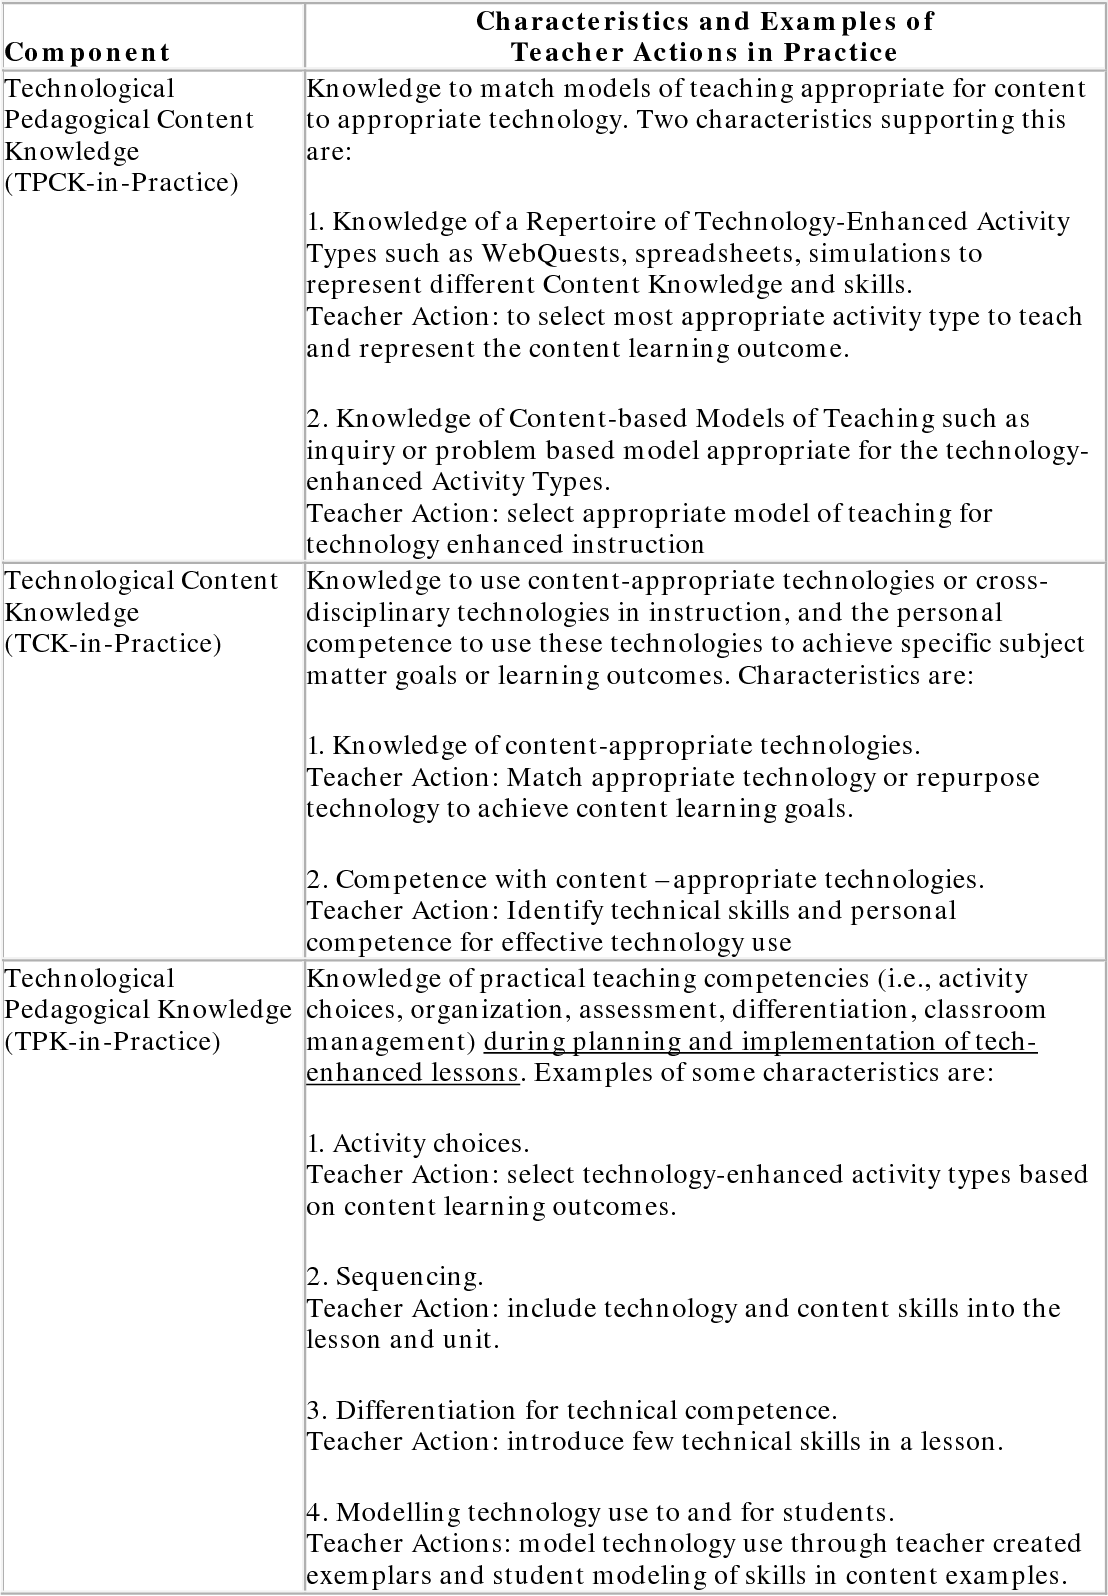 PDF] A Case Study of a TPACK-Based Approach to Teacher